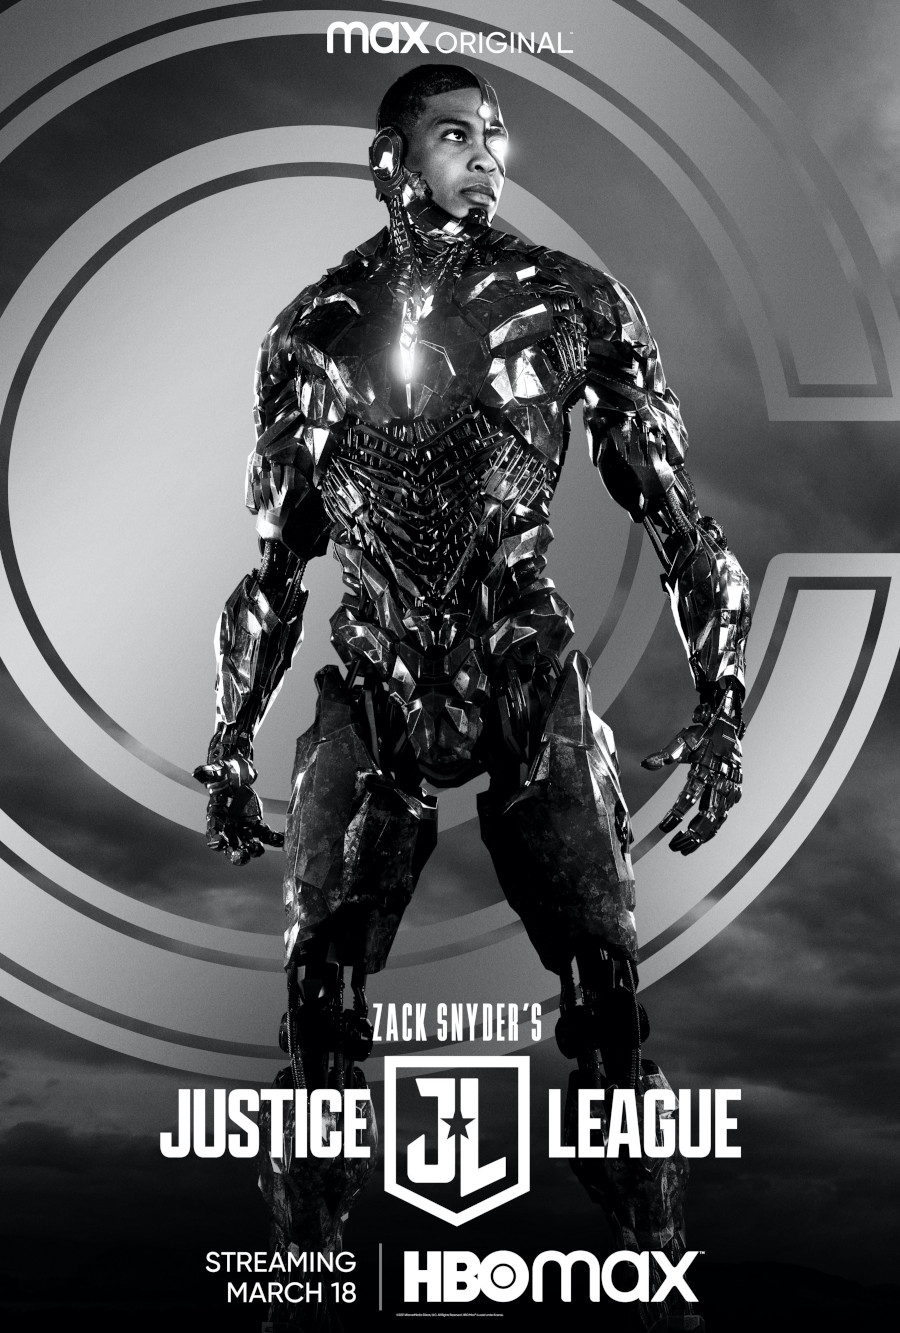 Ray Fisher Cyborg poster Zack Snyder's Justice League